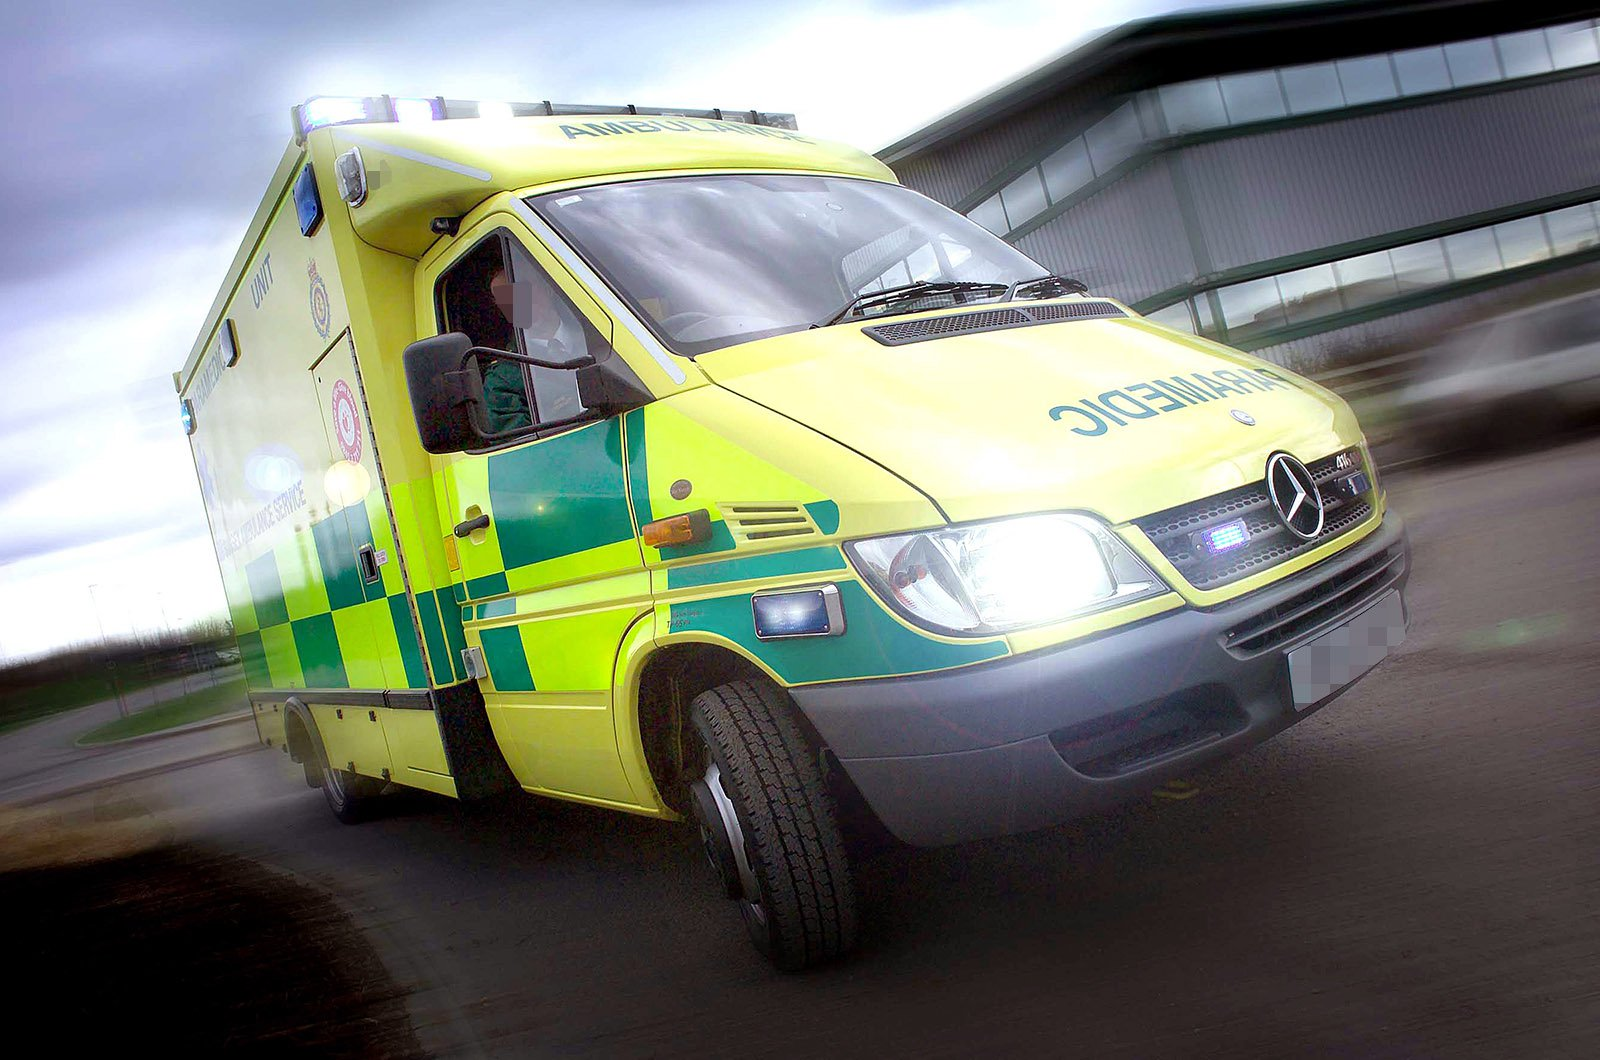 How do you become a paramedic driver? How do you cope with the stress? What annoys you about other car drivers? (Mercedes-Benz)